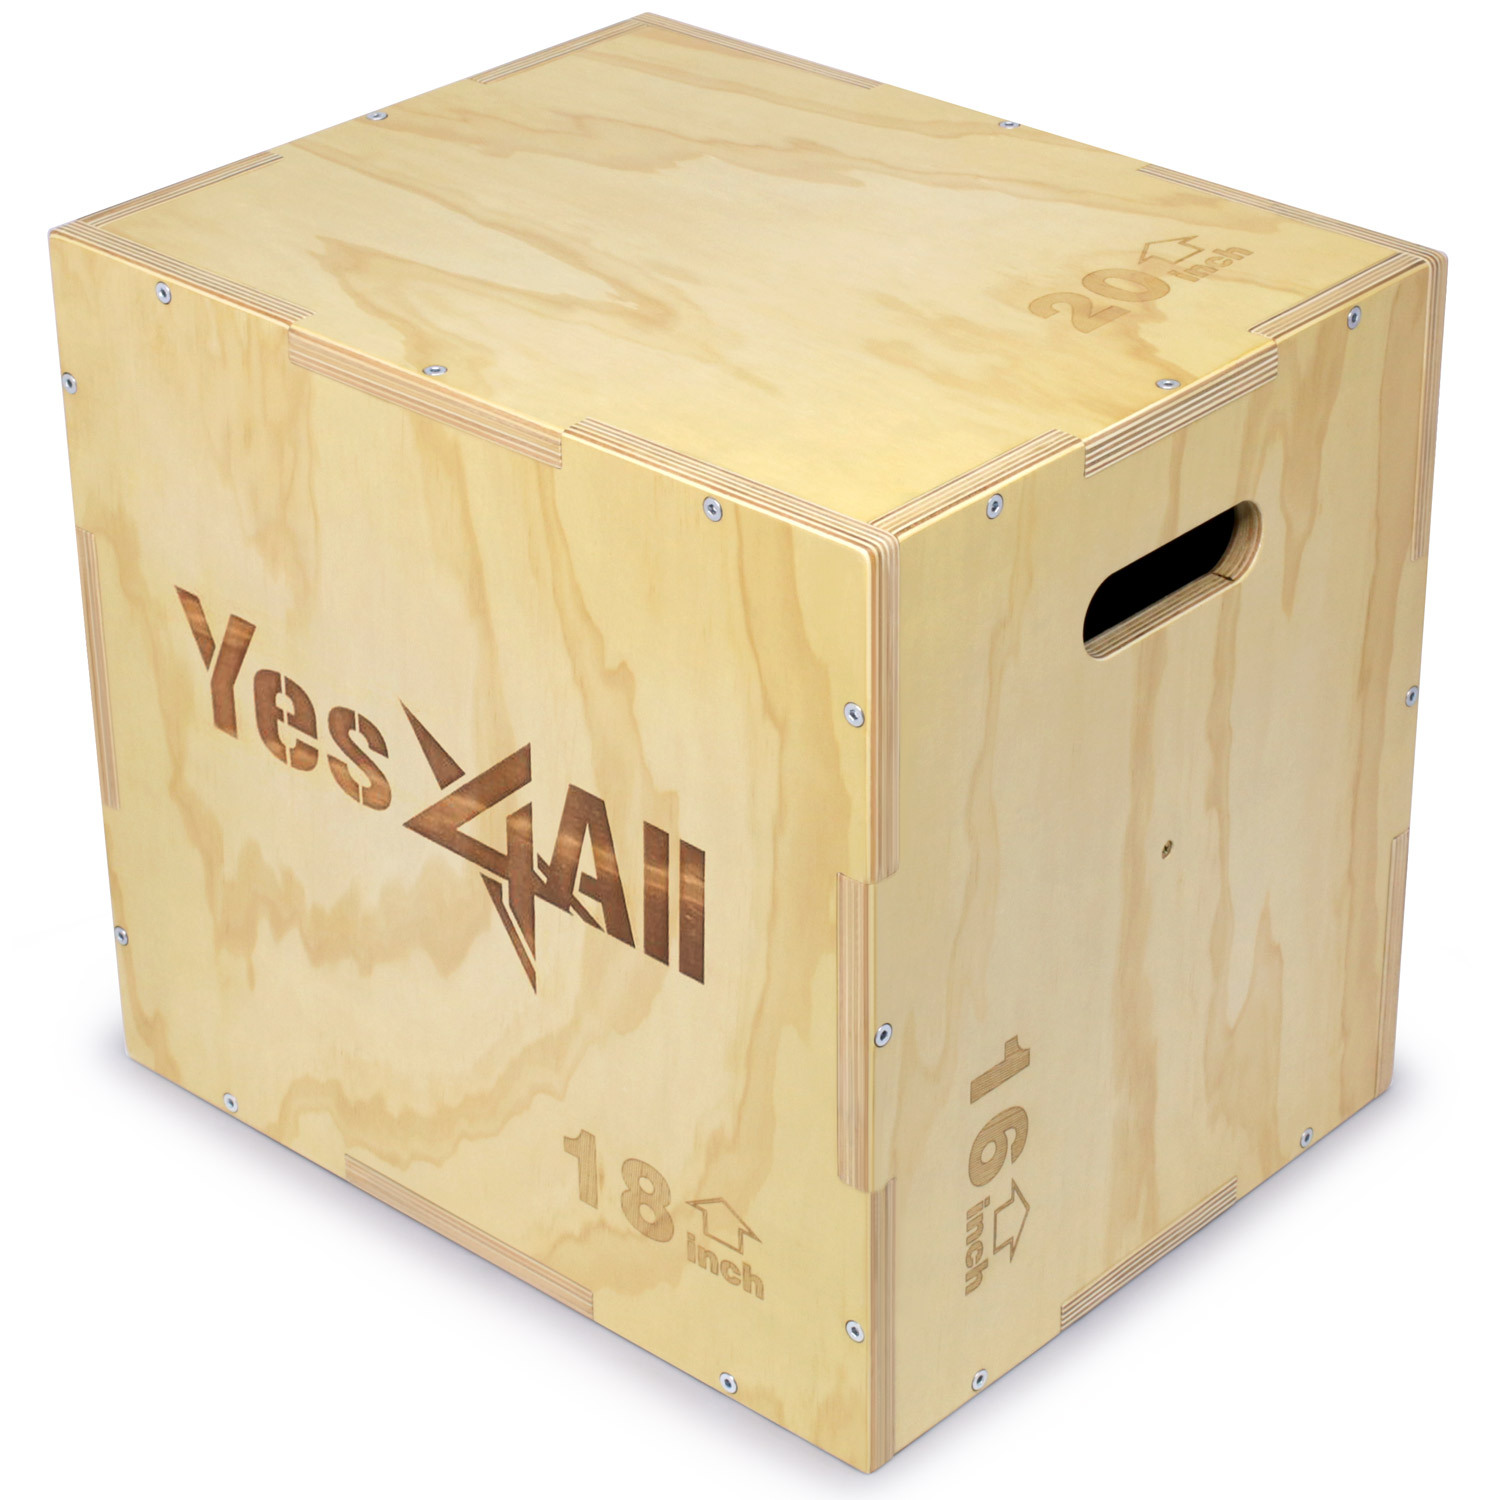 Yes4All 20x18x16 Wooden Plyo Box for Exercise - Included: Packaged Screws